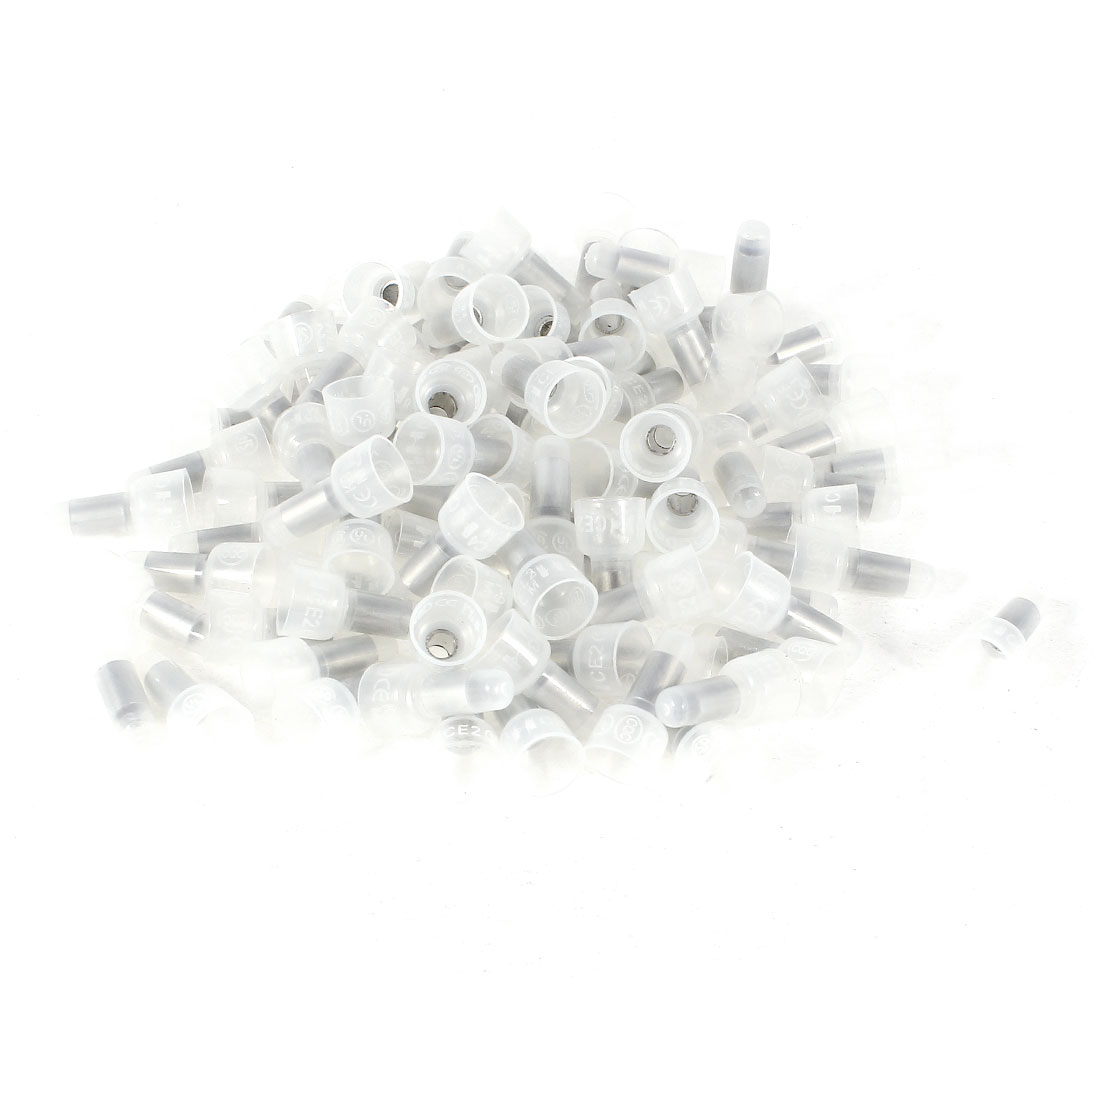 100 Pcs 4mm Tin Plated Copper Tube White Plastic Closed End Wire Connectors